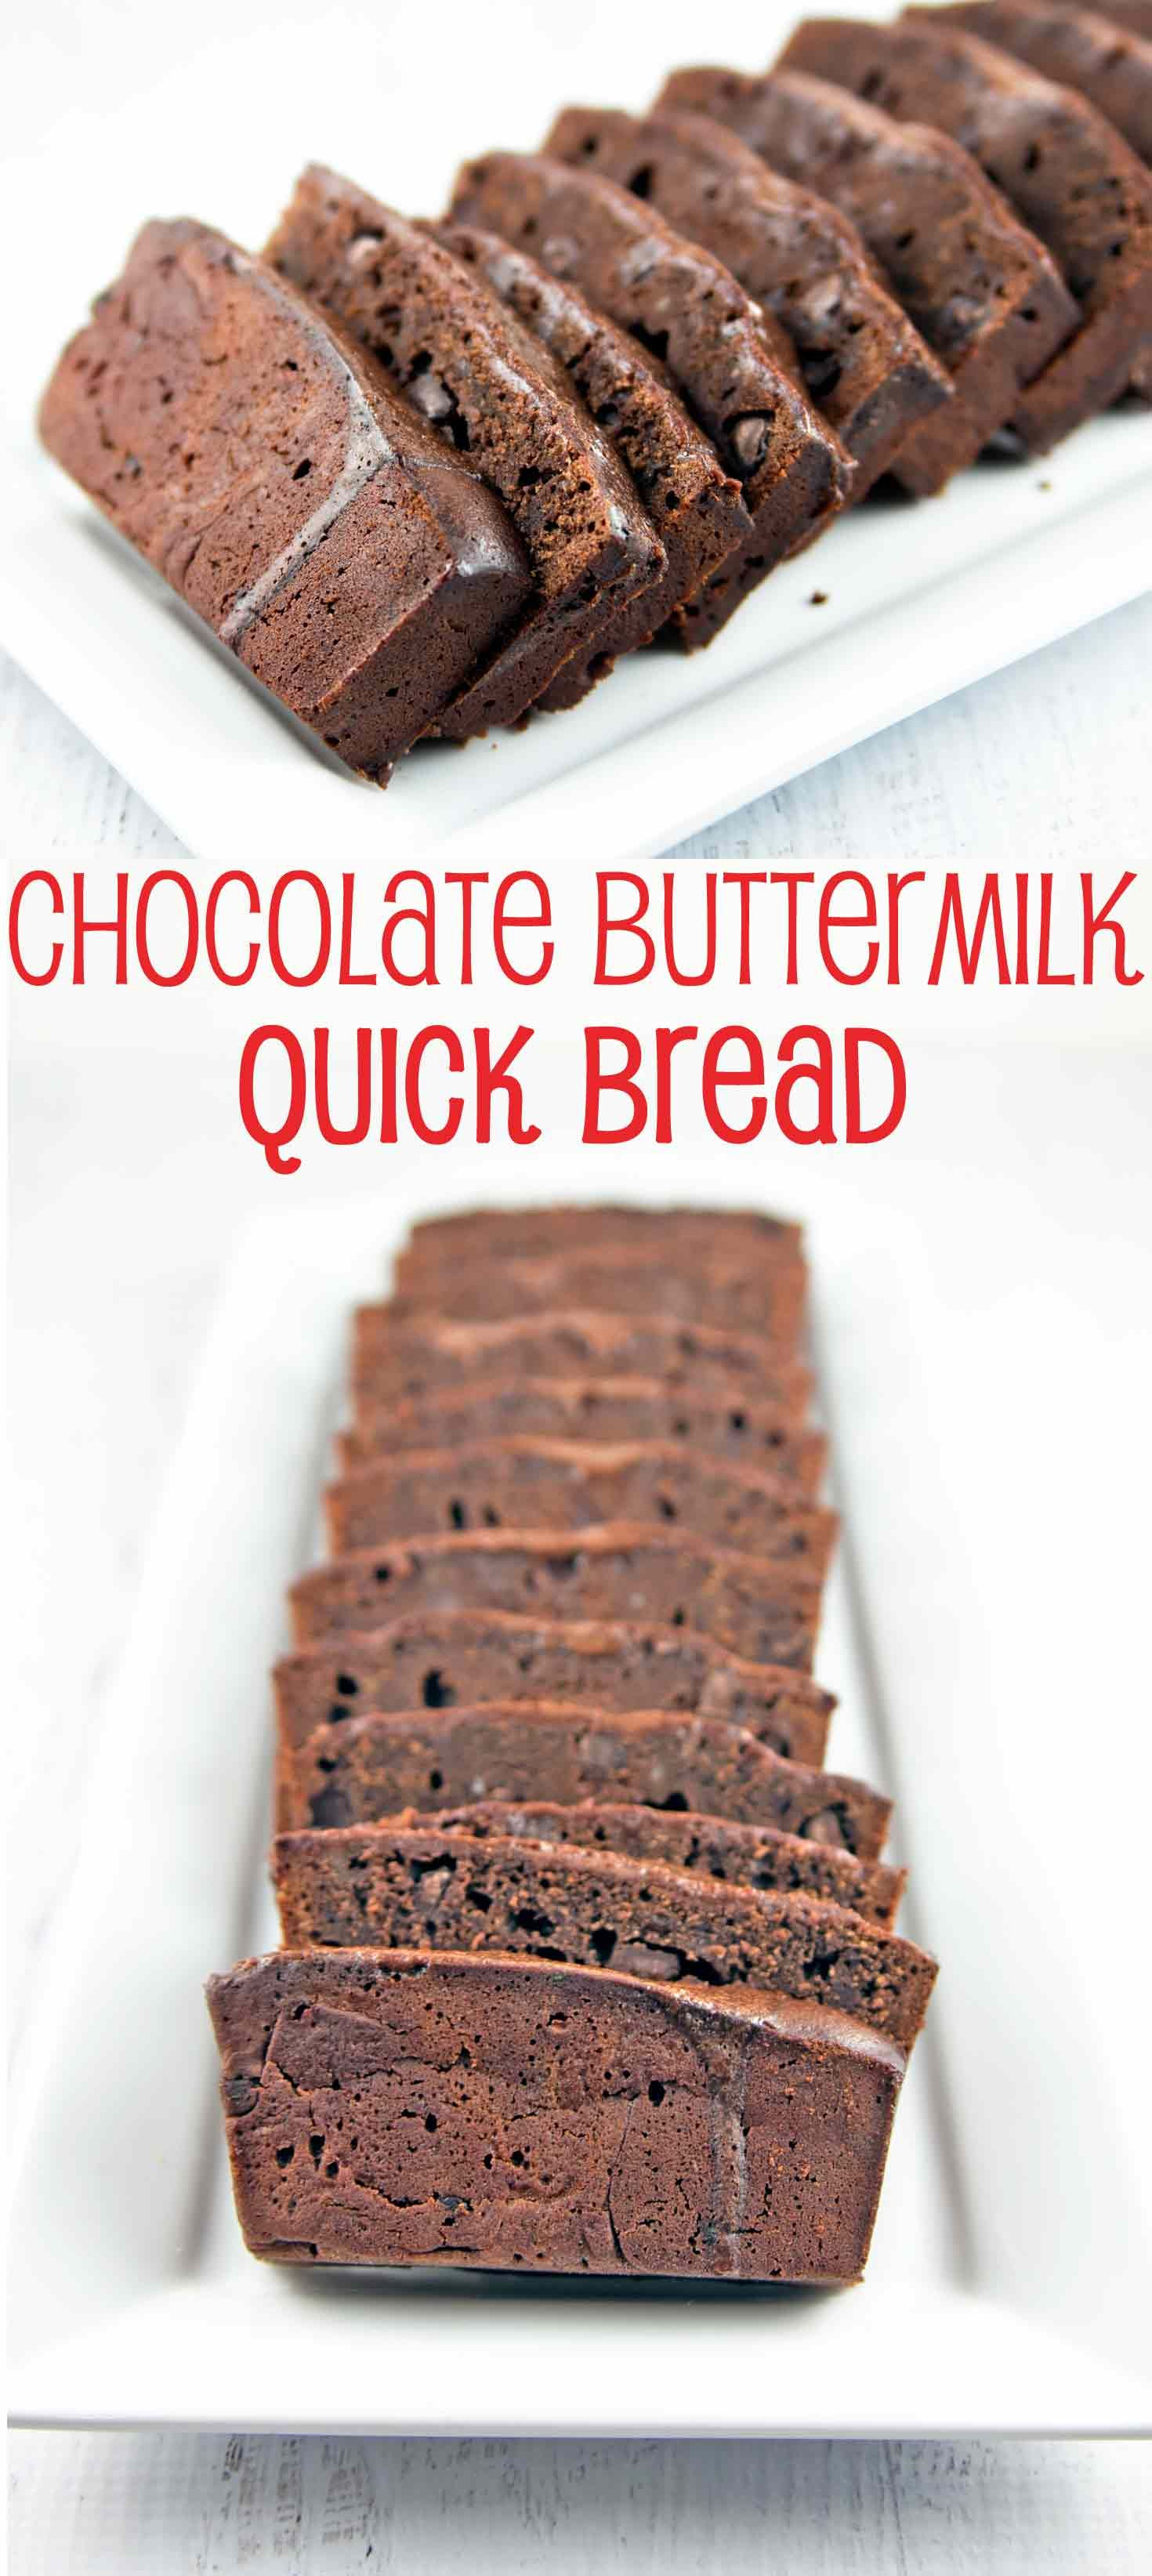 Chocolate Buttermilk Quick Bread Recipe Bread Recipes Sweet Quick Bread Buttermilk Recipes